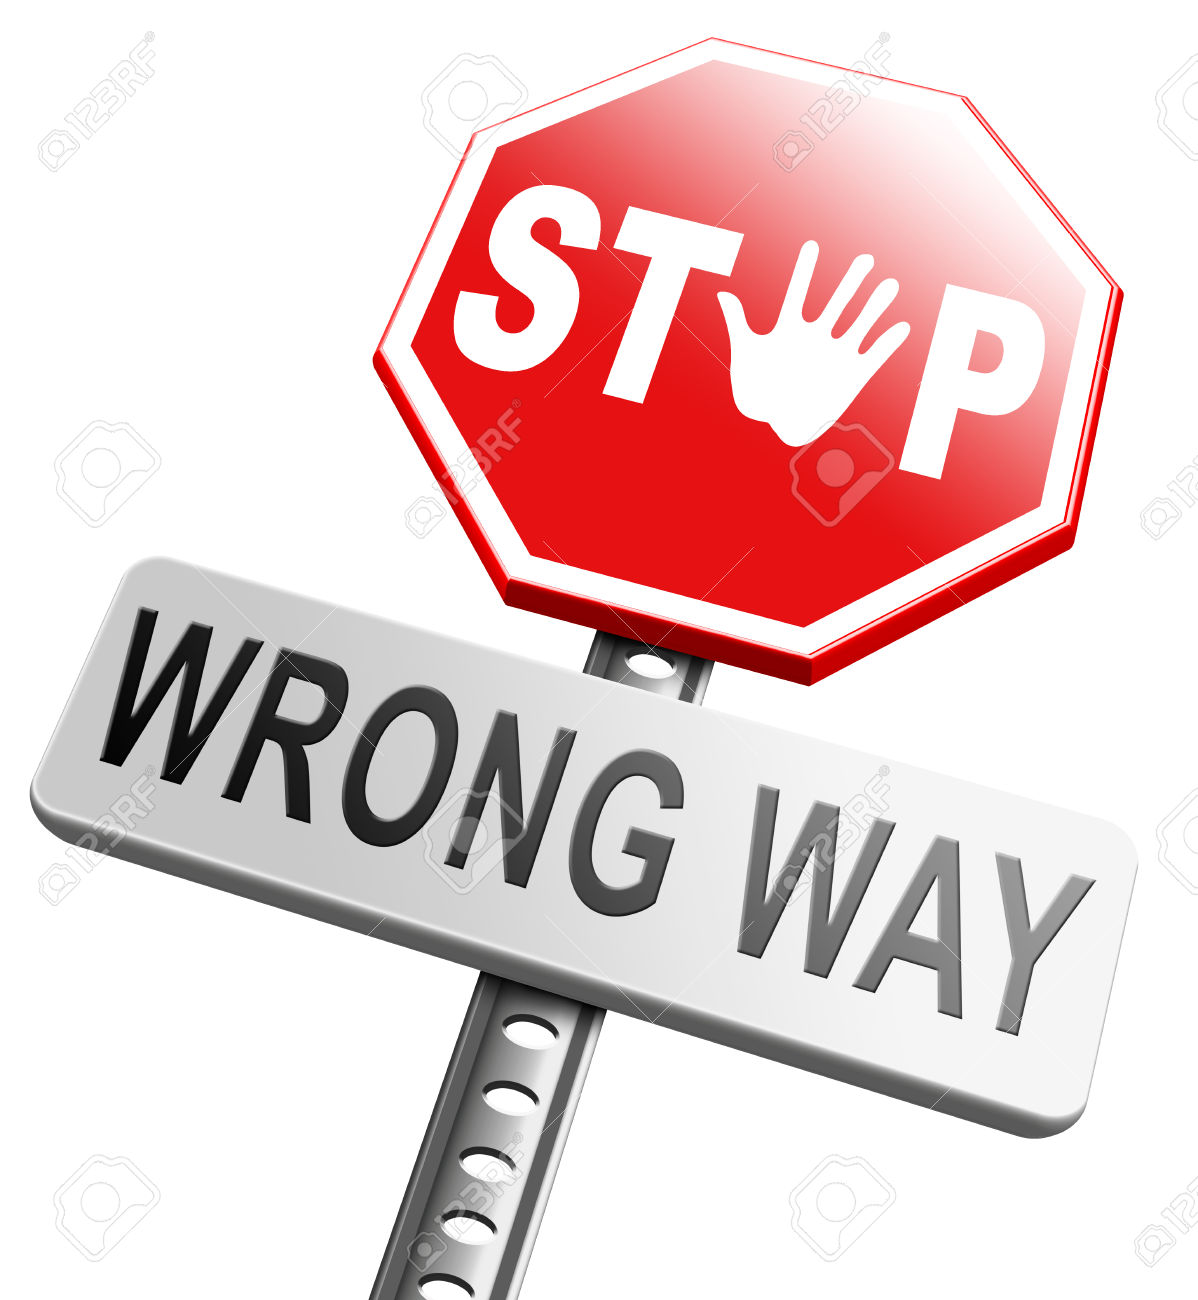 Wrong Way Stop And Turn Back Now Bad Direction Making Mistakes.